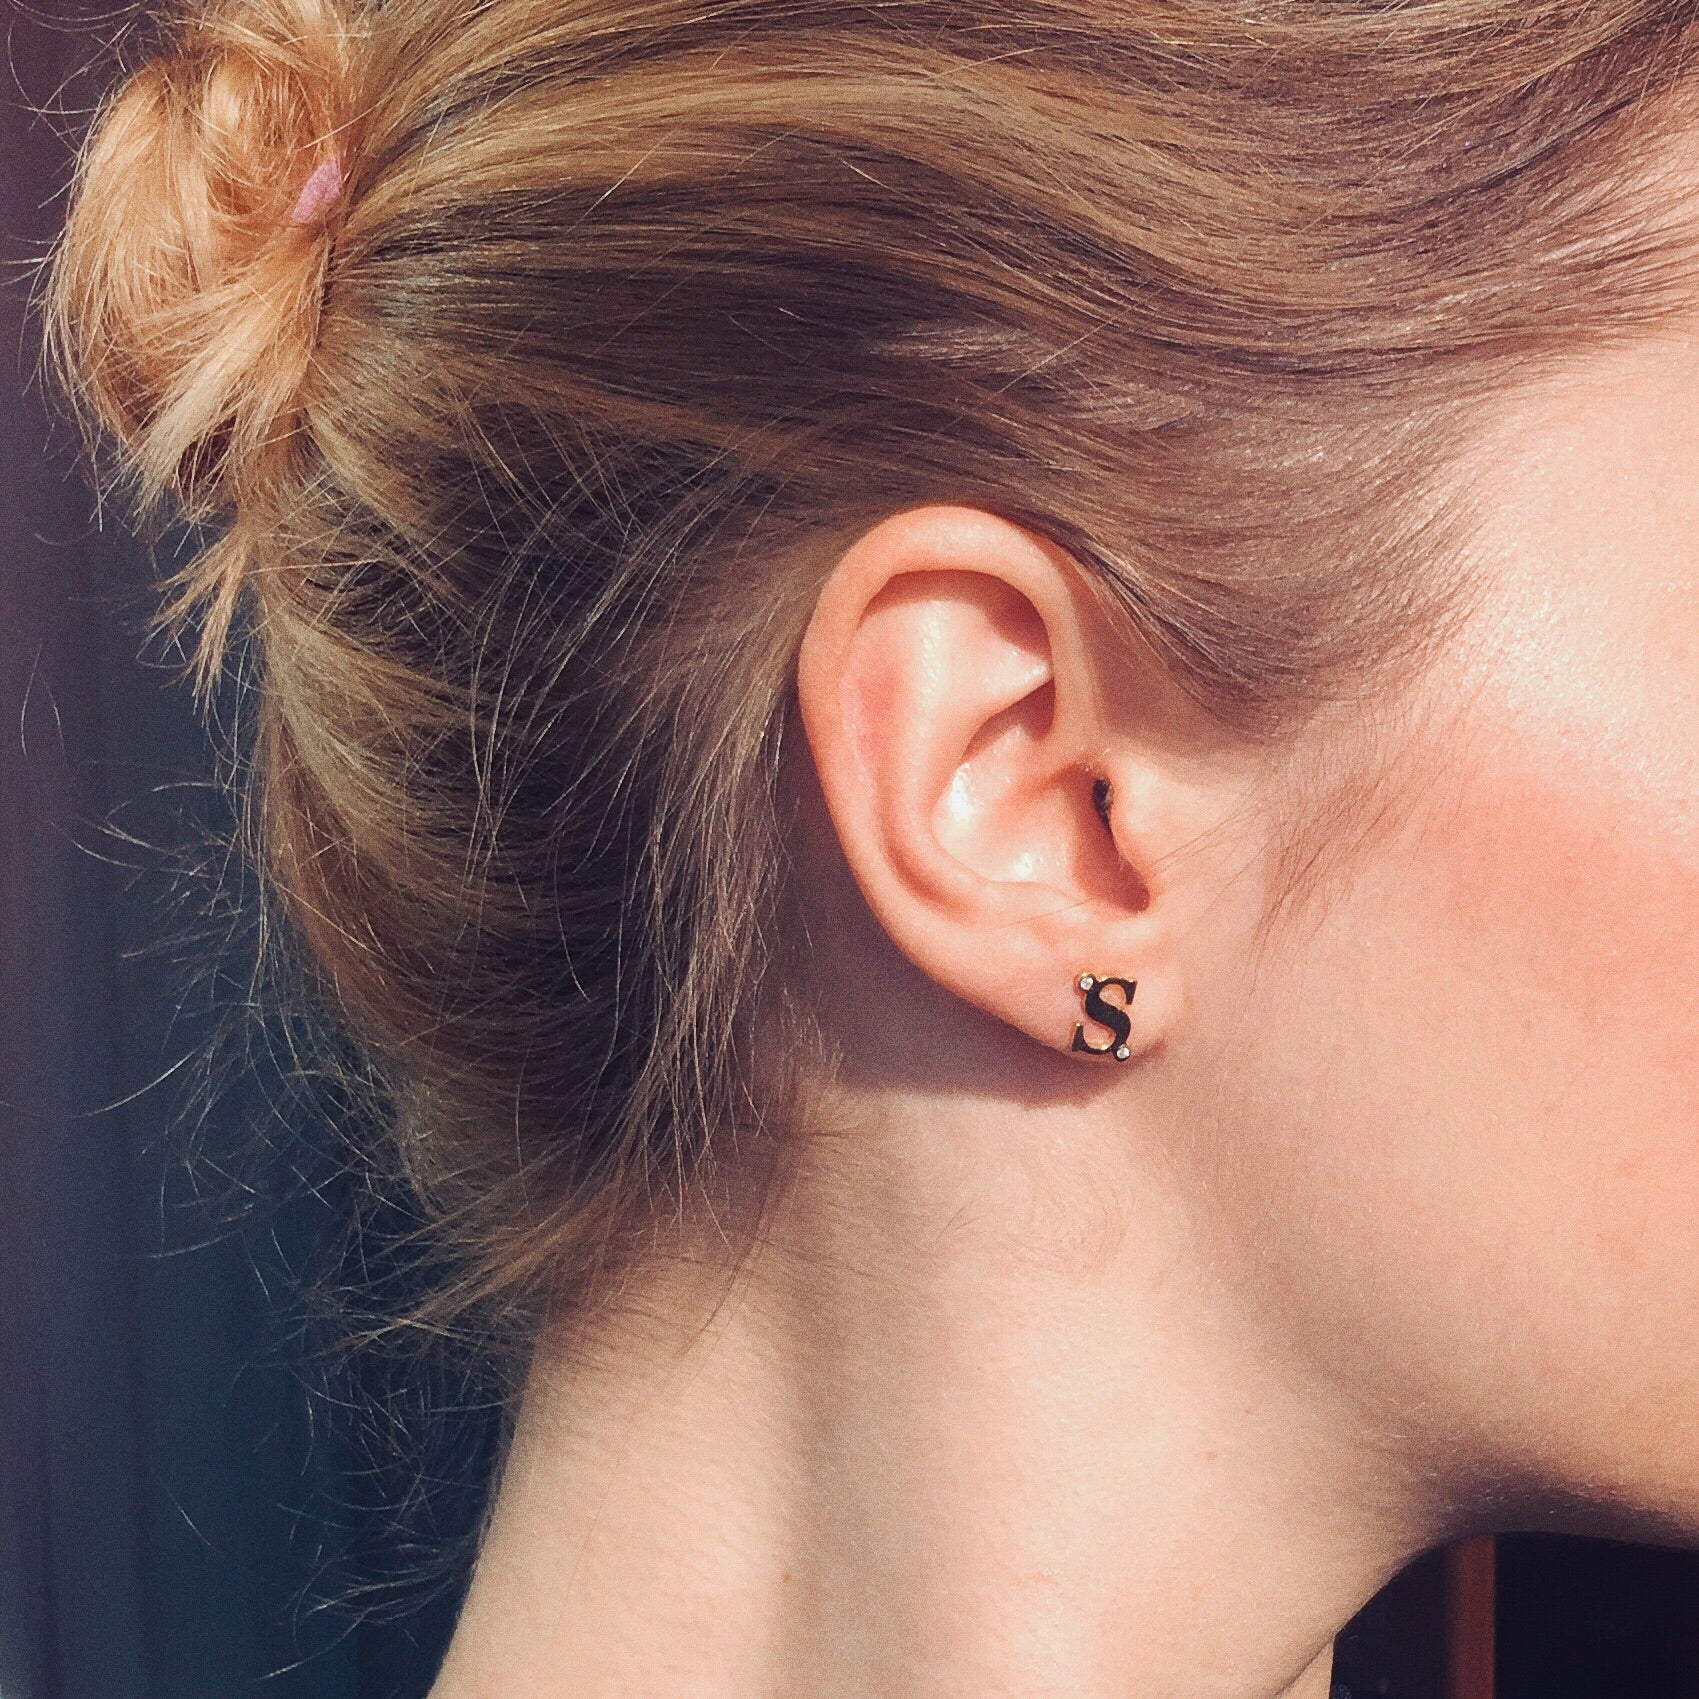 MY EARRINGS №1 - BYVELA designer jewellery in silver and gold